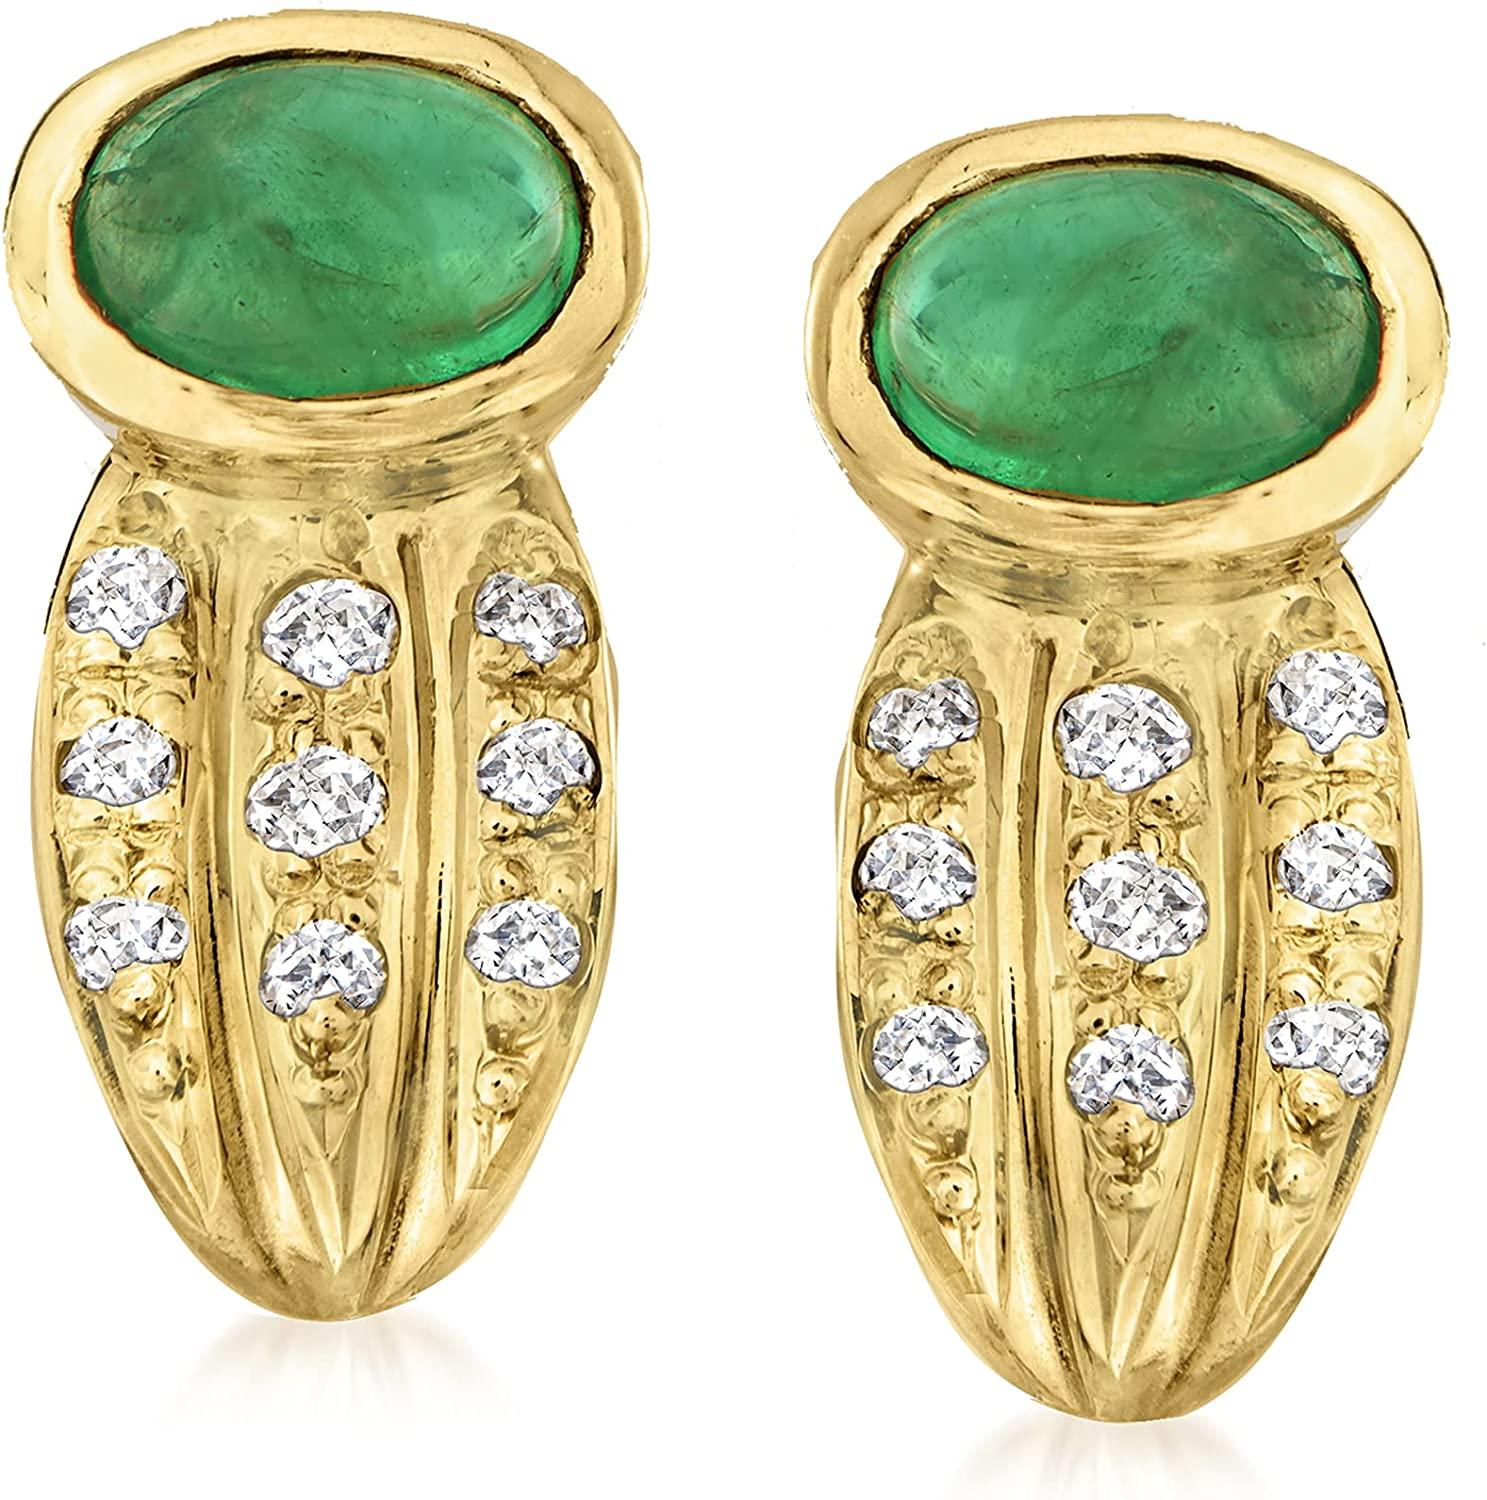 Ross-Simons C. 1990 Vintage 1.03 ct. t.w. Emerald Clip-On Earrings With .16 ct. t.w. Diamonds in 18kt Yellow Gold